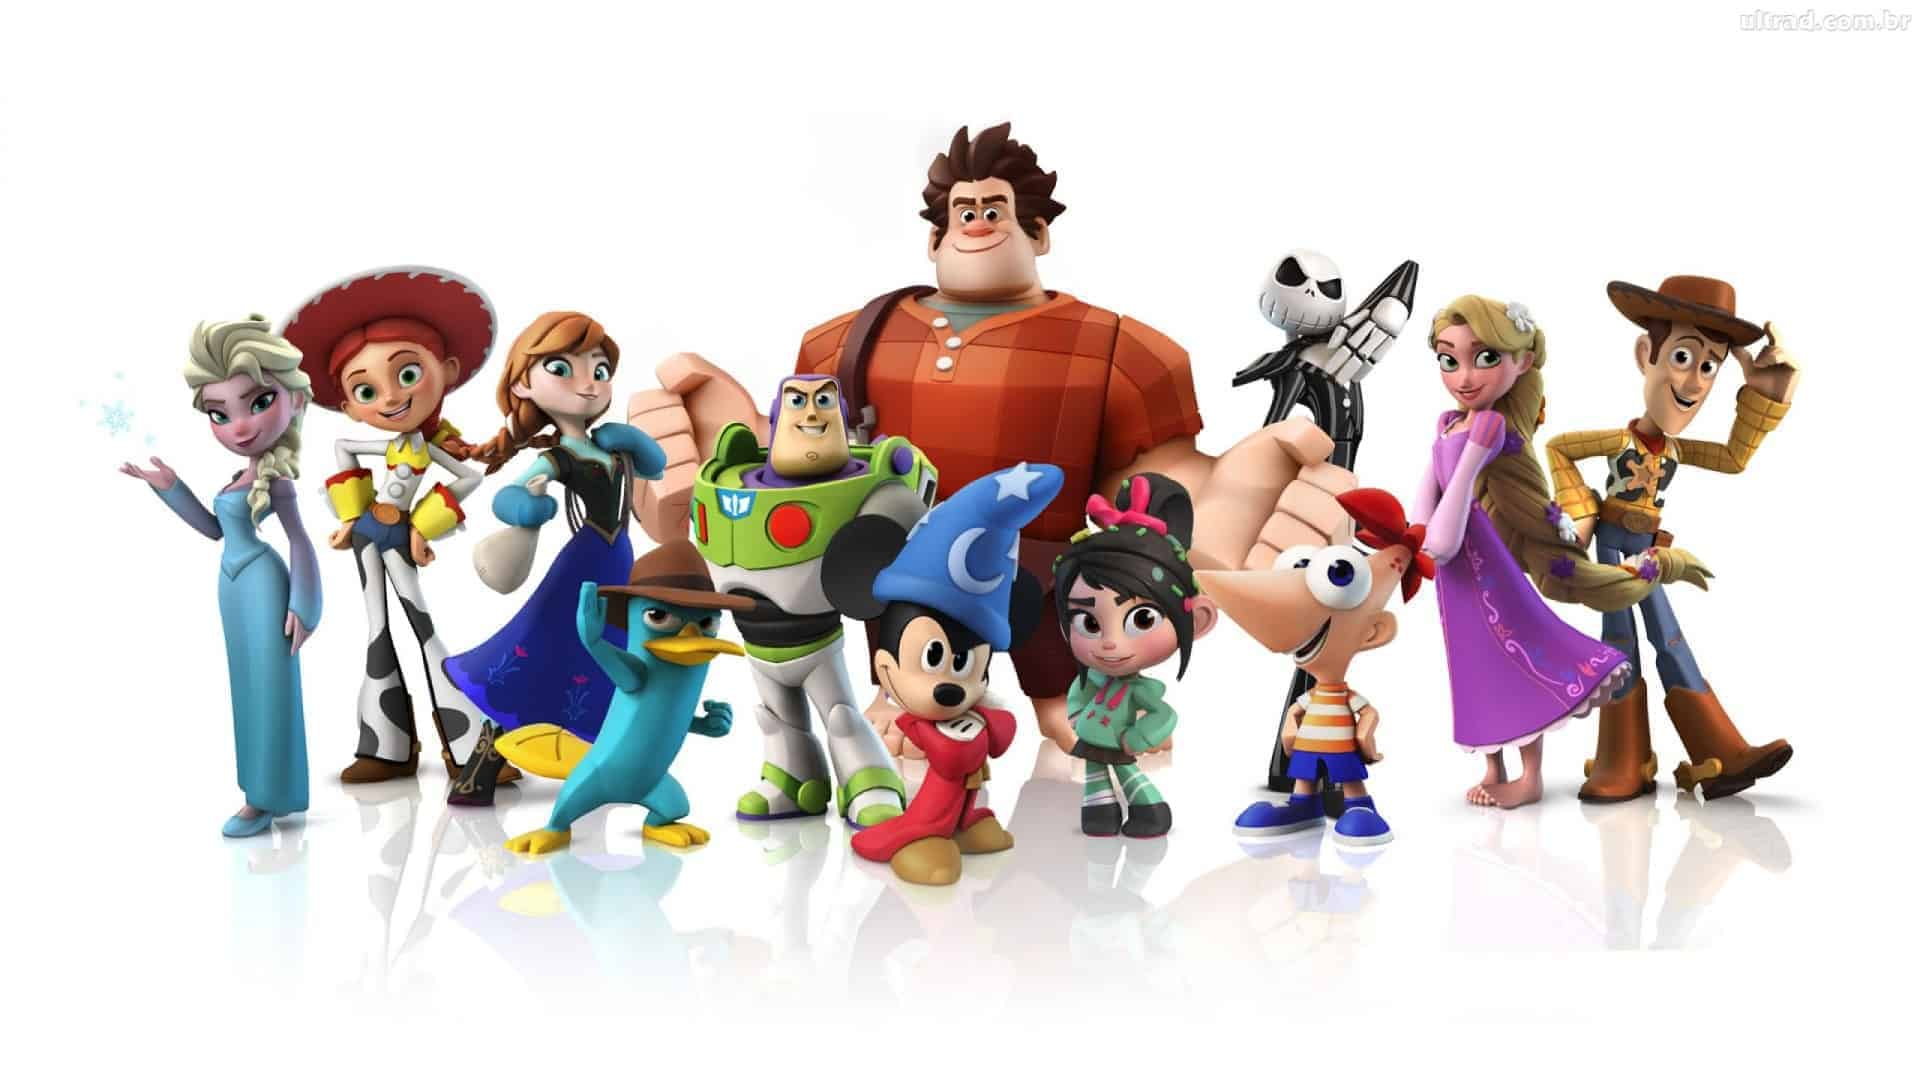 disney_infinity_video_game_characters-1920x1080